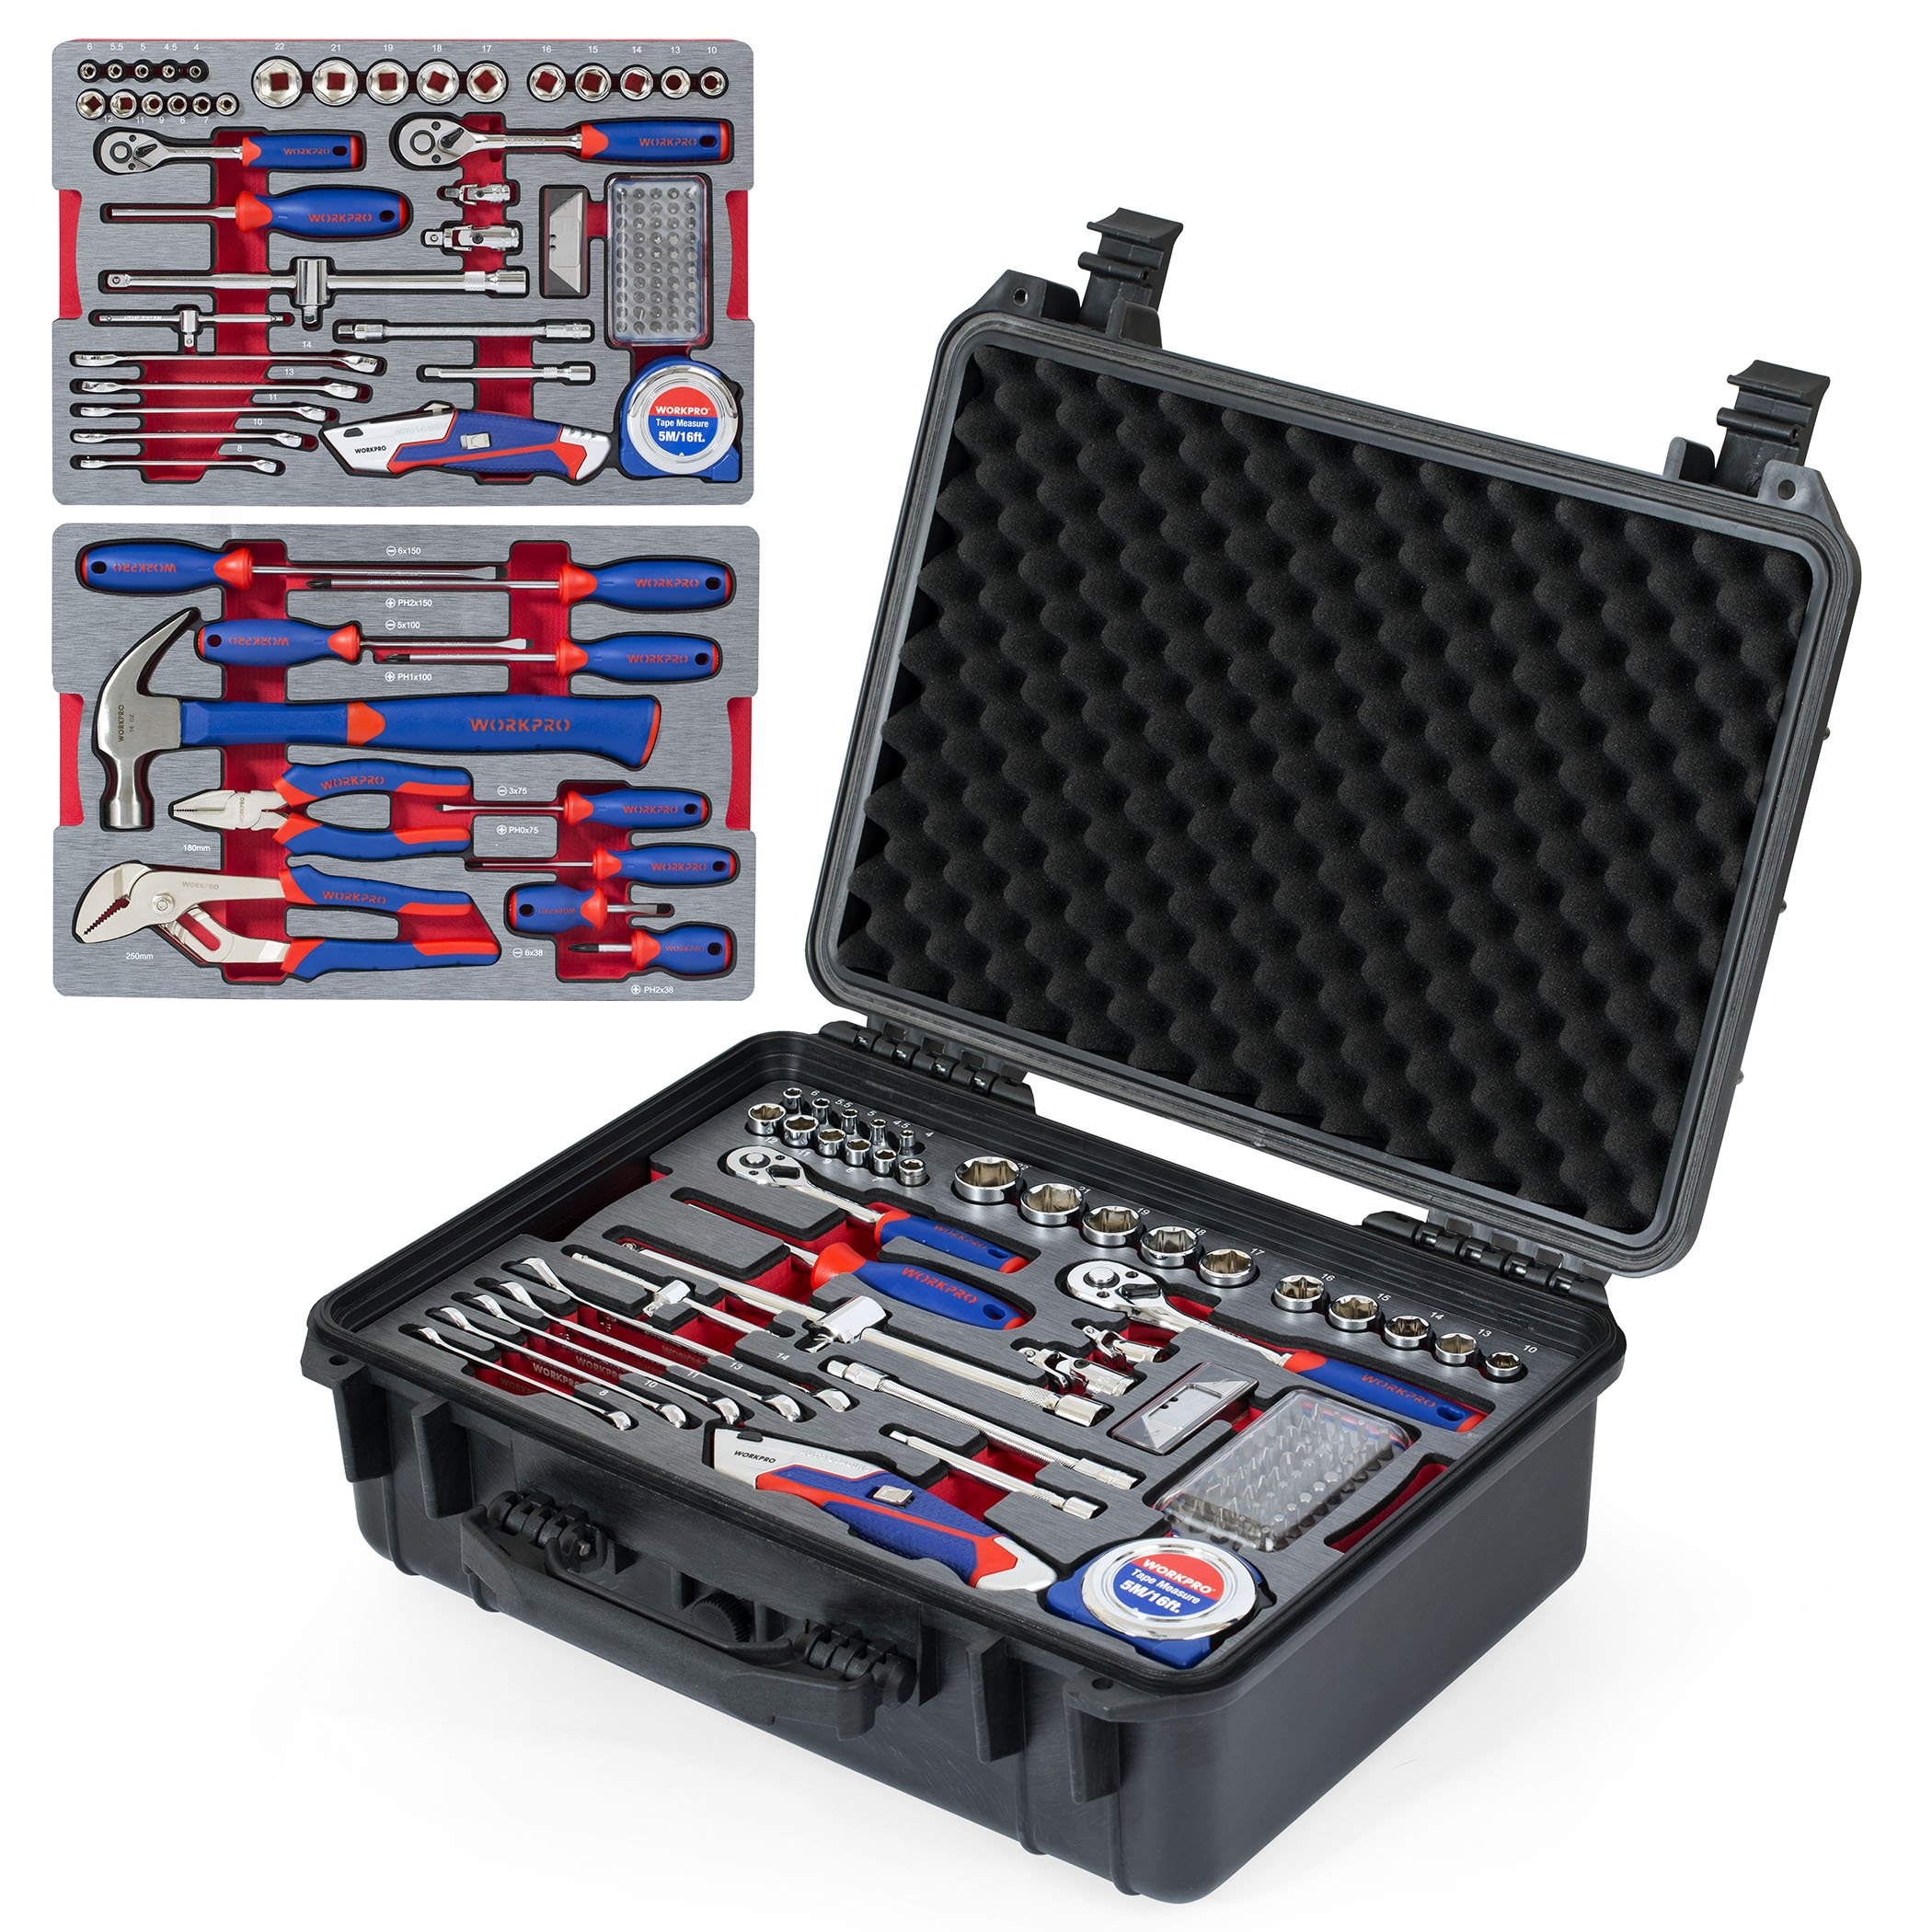 CDM product WORKPRO W009043A 110-Piece Home Repair Tool Set - Chrome-vanadium, Packed in Waterproof Case for DIY, Auto and Home Maintenance big image